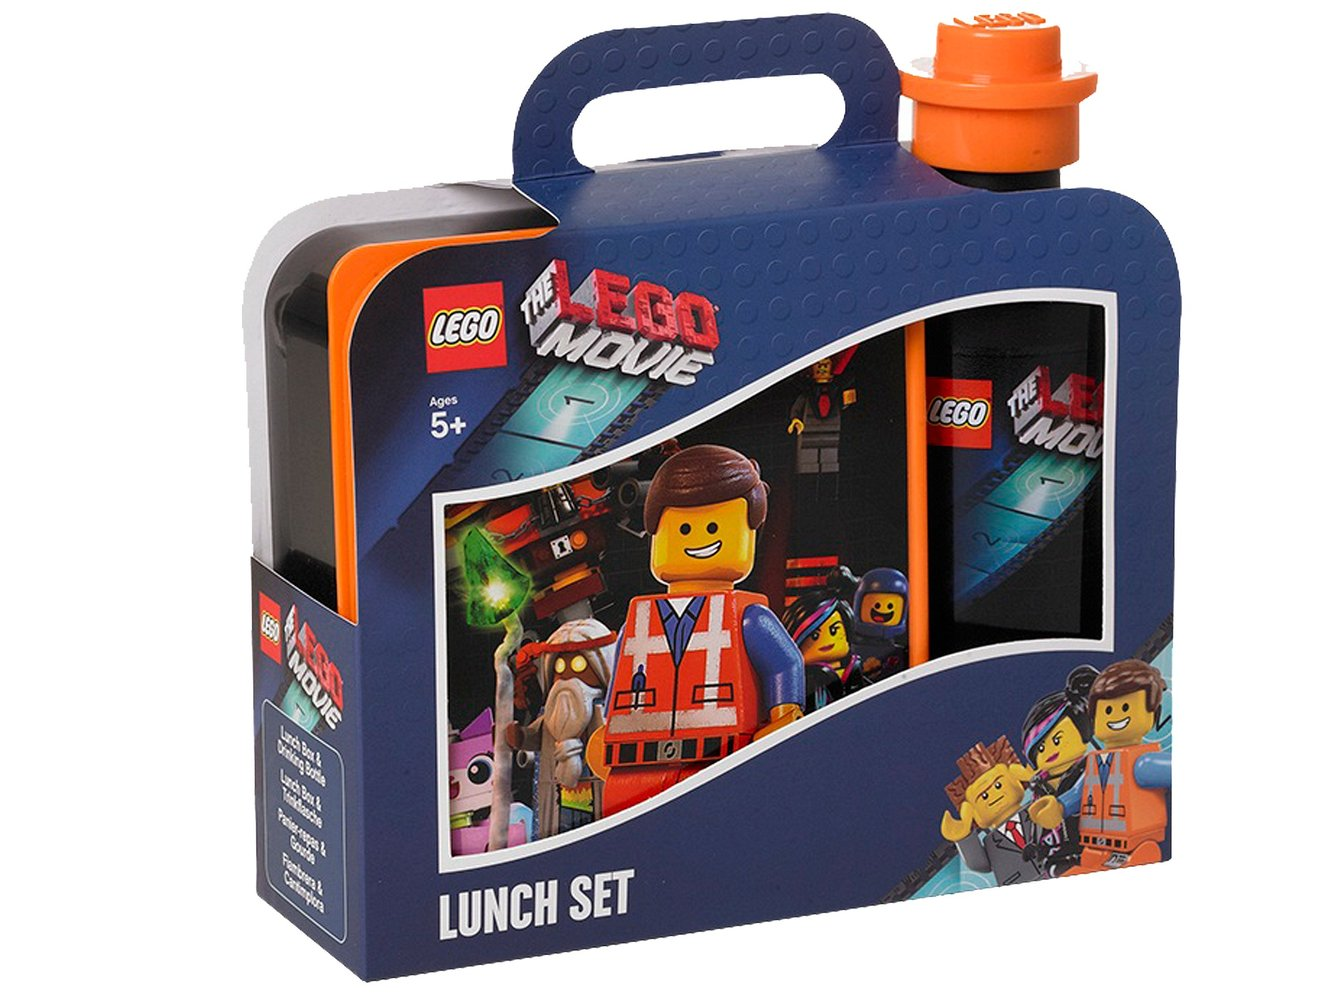 The LEGO Movie Lunch Set